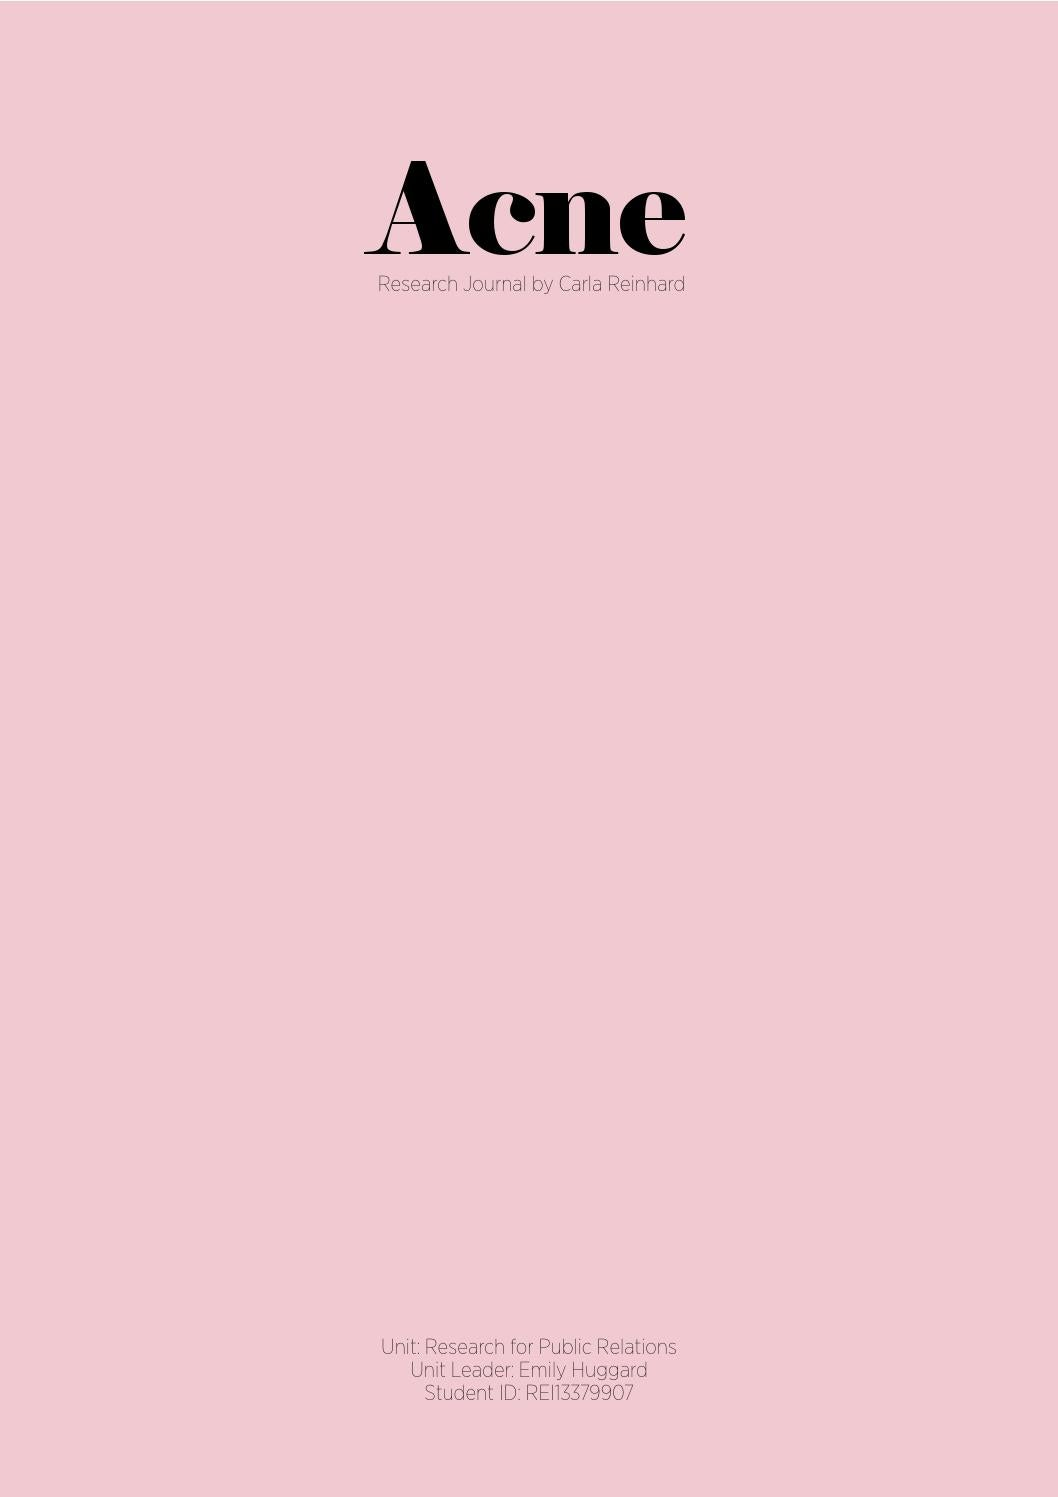 Acne Studios Väska : Acne studios pixshark images galleries with a